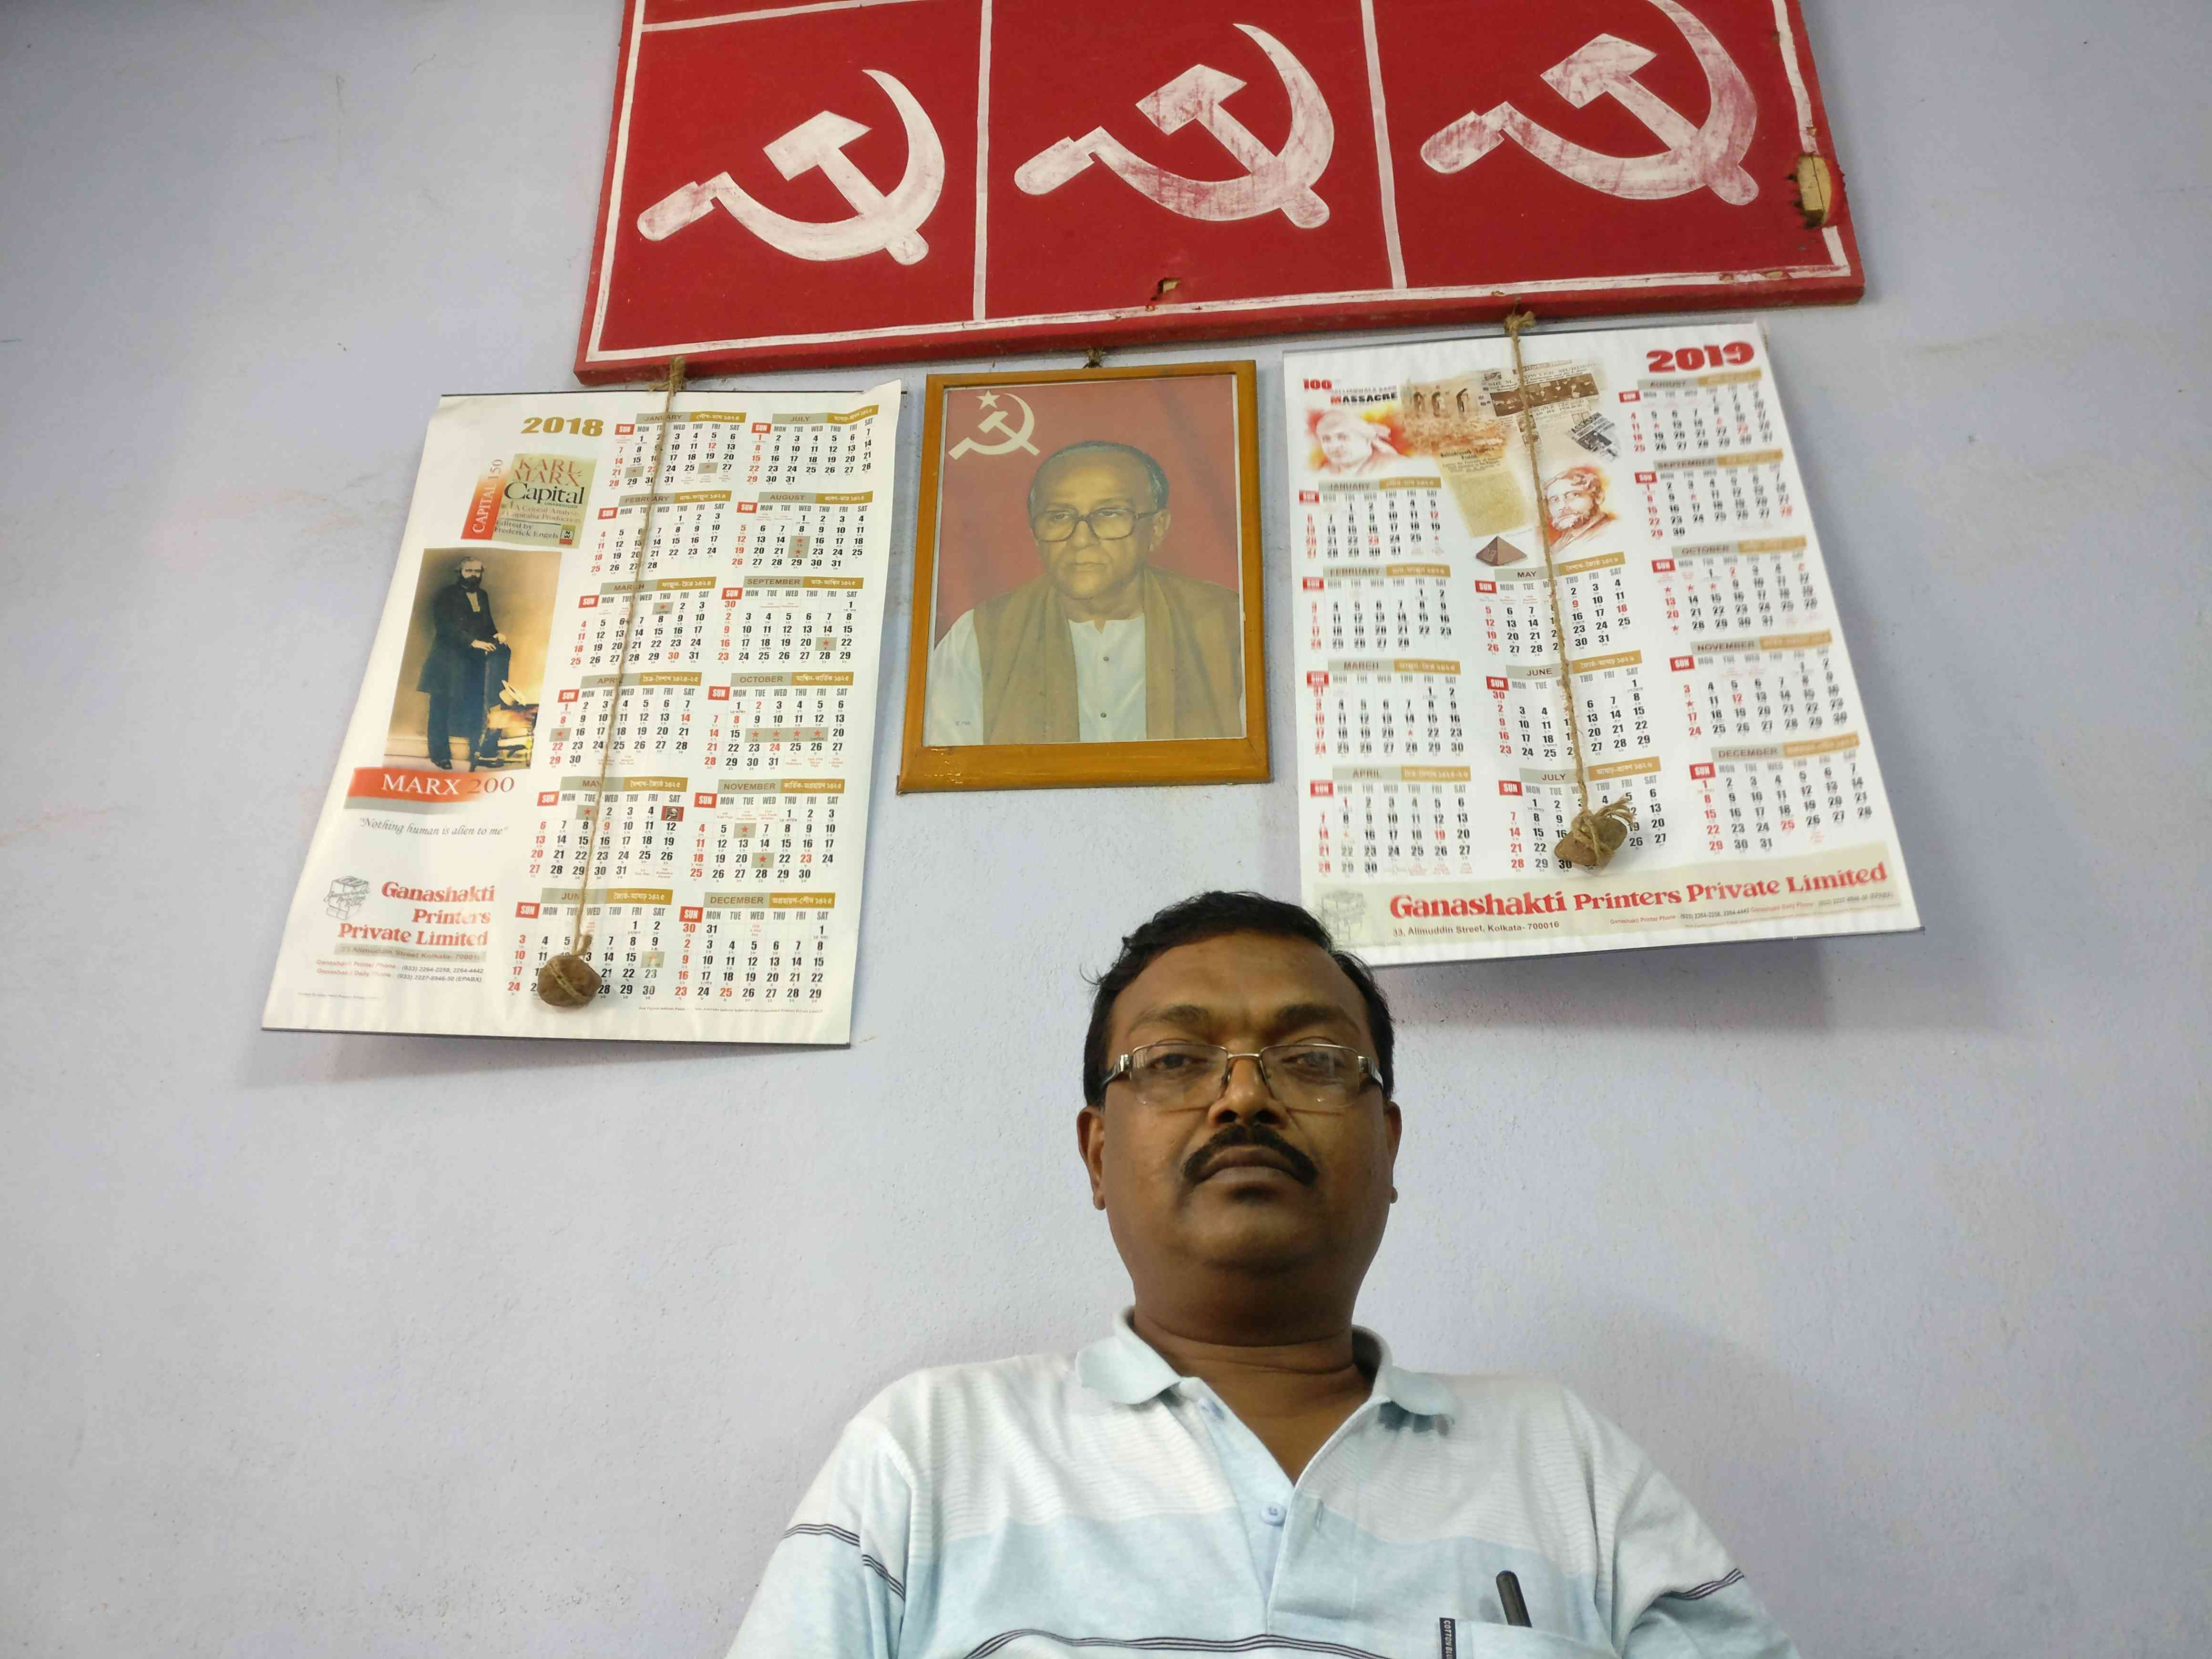 Communist workers want to defeat the Trinamool Congress at any cost and they feel joining the BJP will help achieve that goal, says Pradip Kumar Sarkar. Photo credit: Shoaib Daniyal